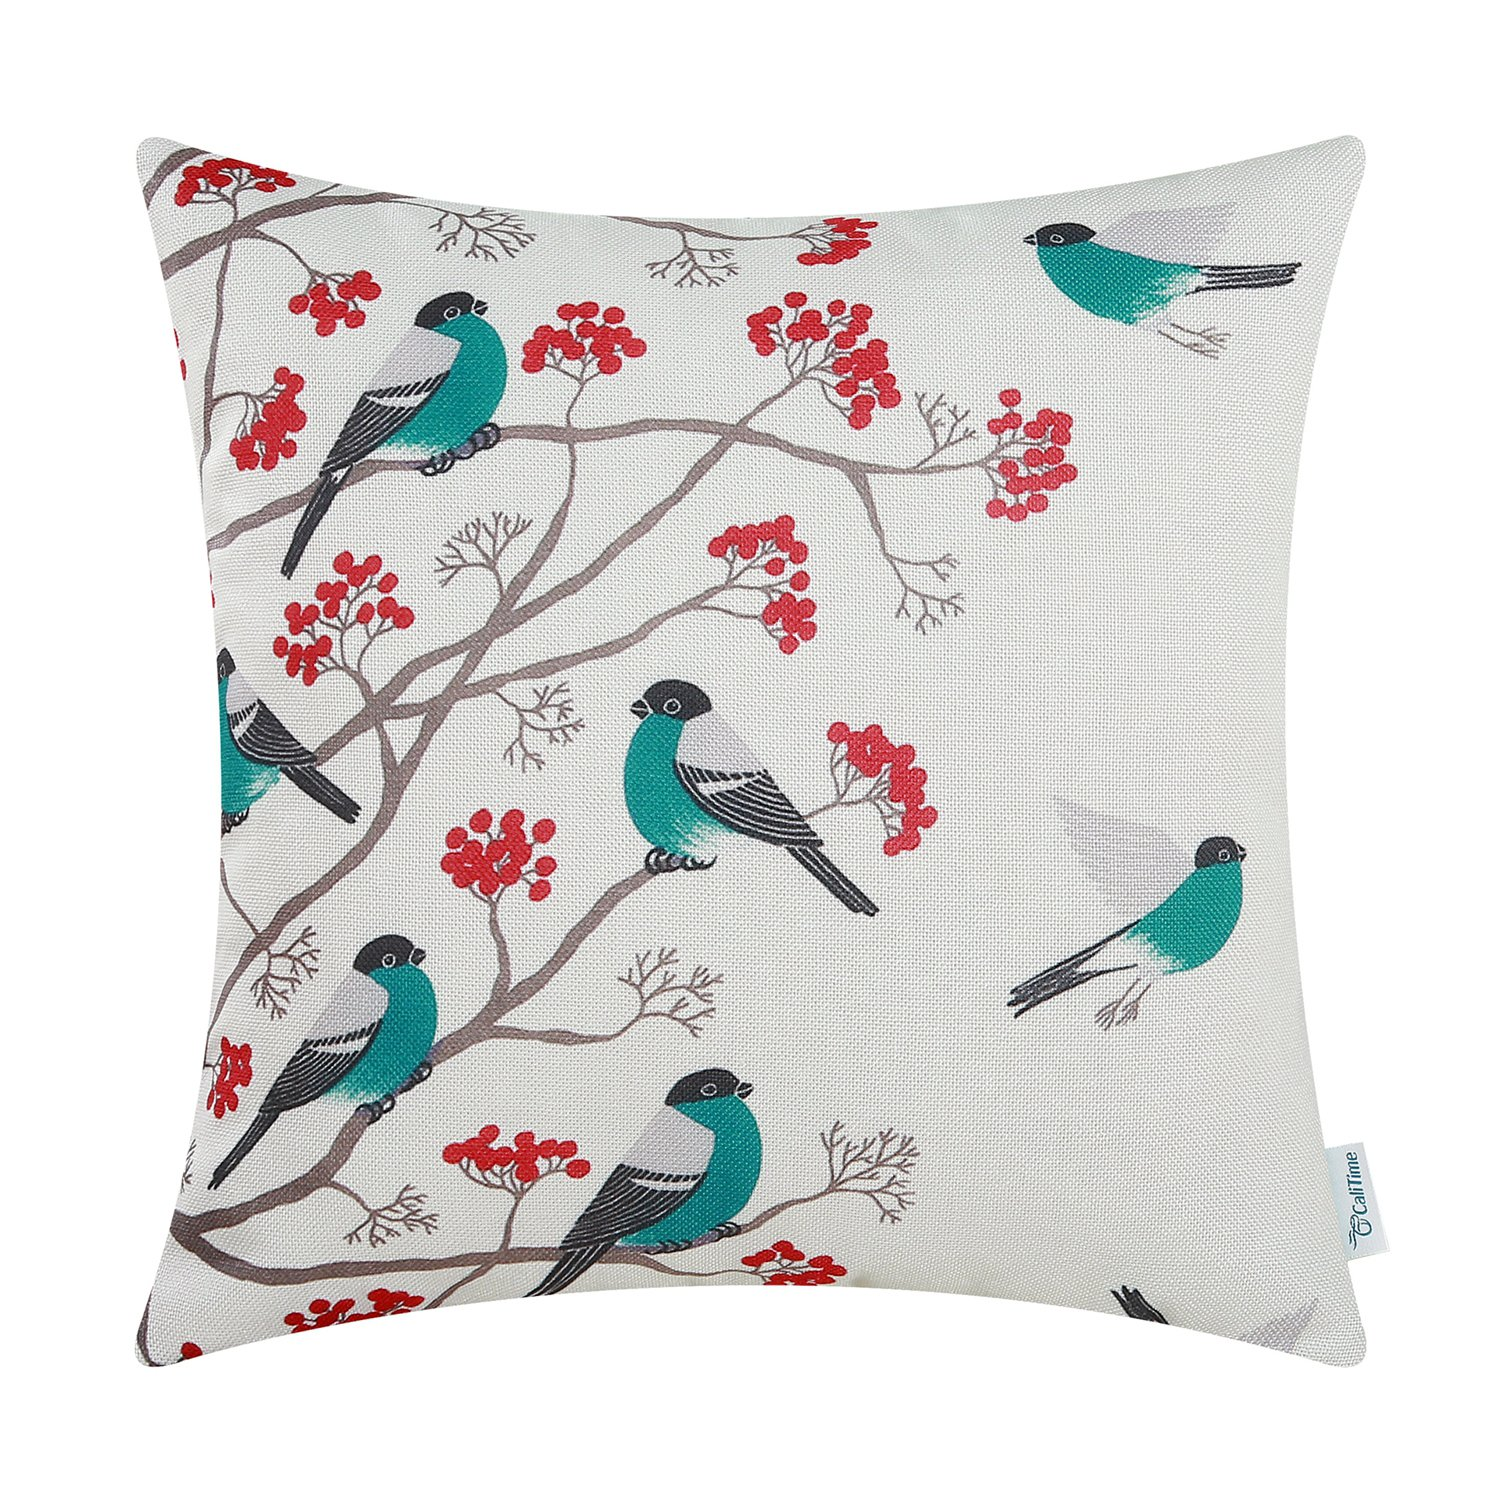 CaliTime Canvas Throw Pillow Cover Case for Couch Sofa Home Decoration Chickadees Birds with Red Floral Tree Branches 18 X 18 inches Teal Birds